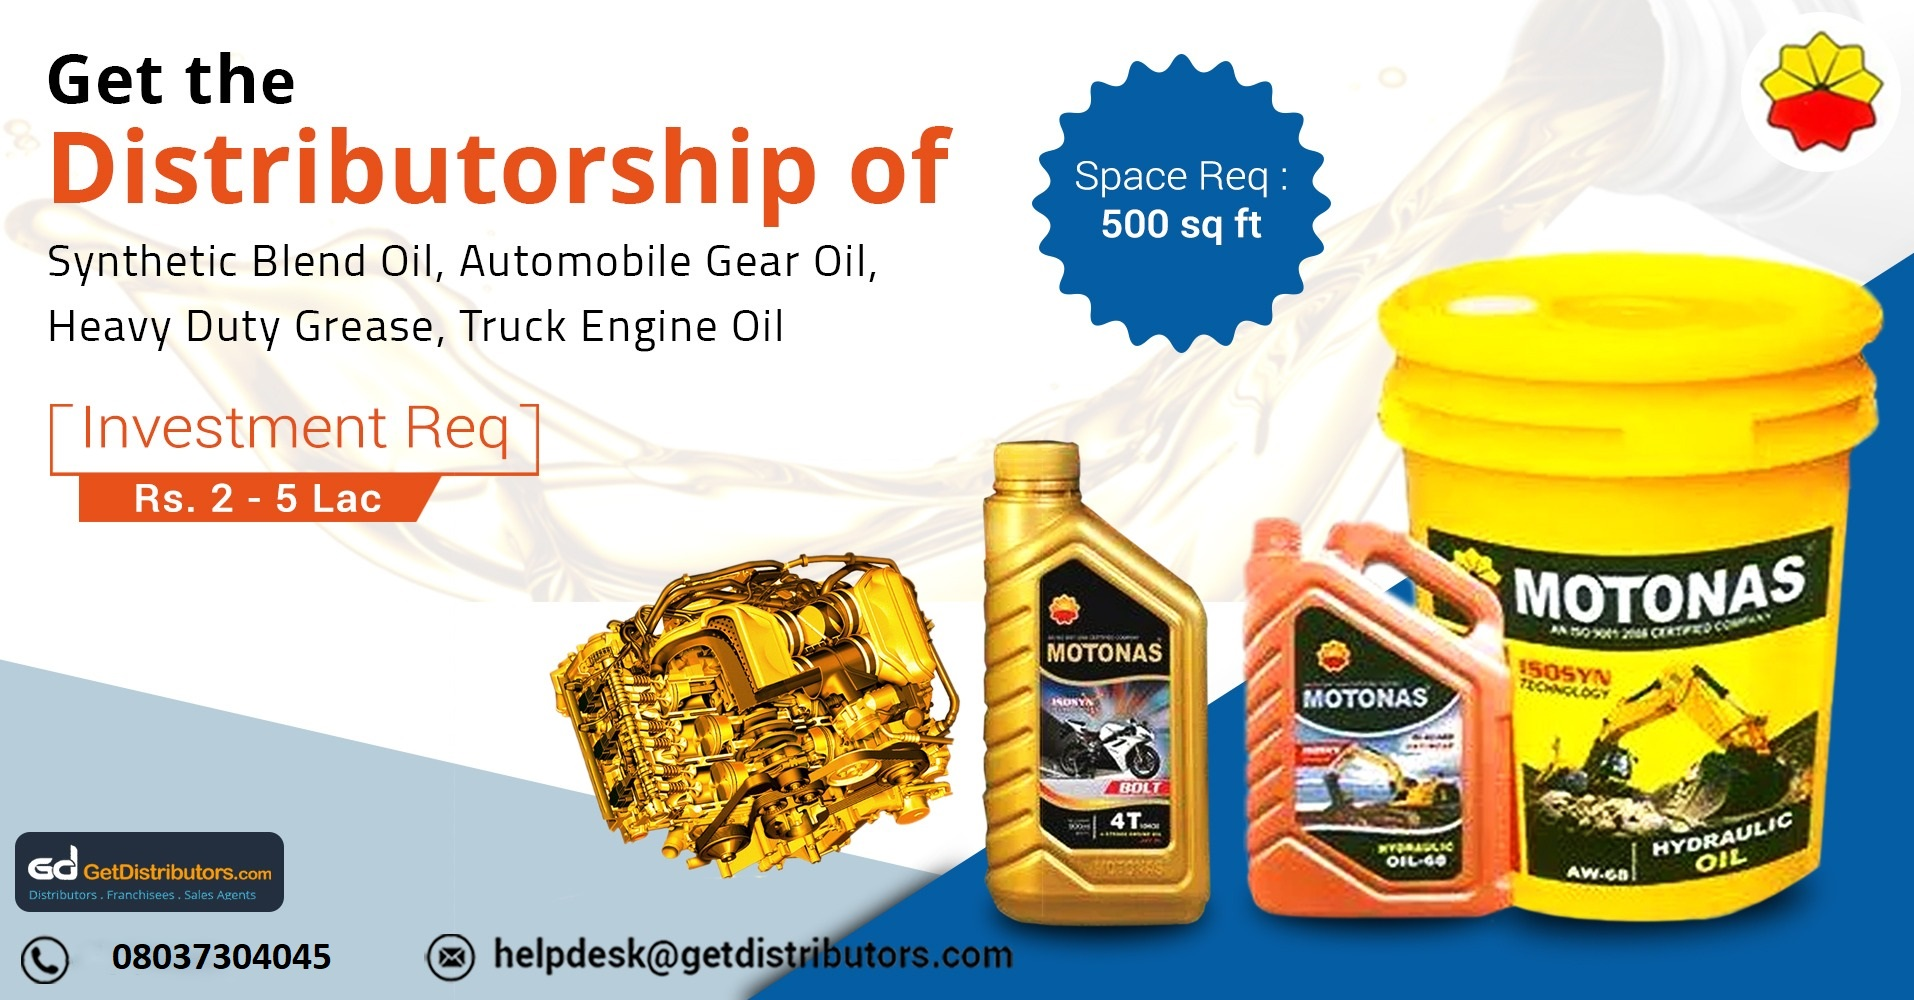 Offering industrial oils, lubricants, and grease at affordable price